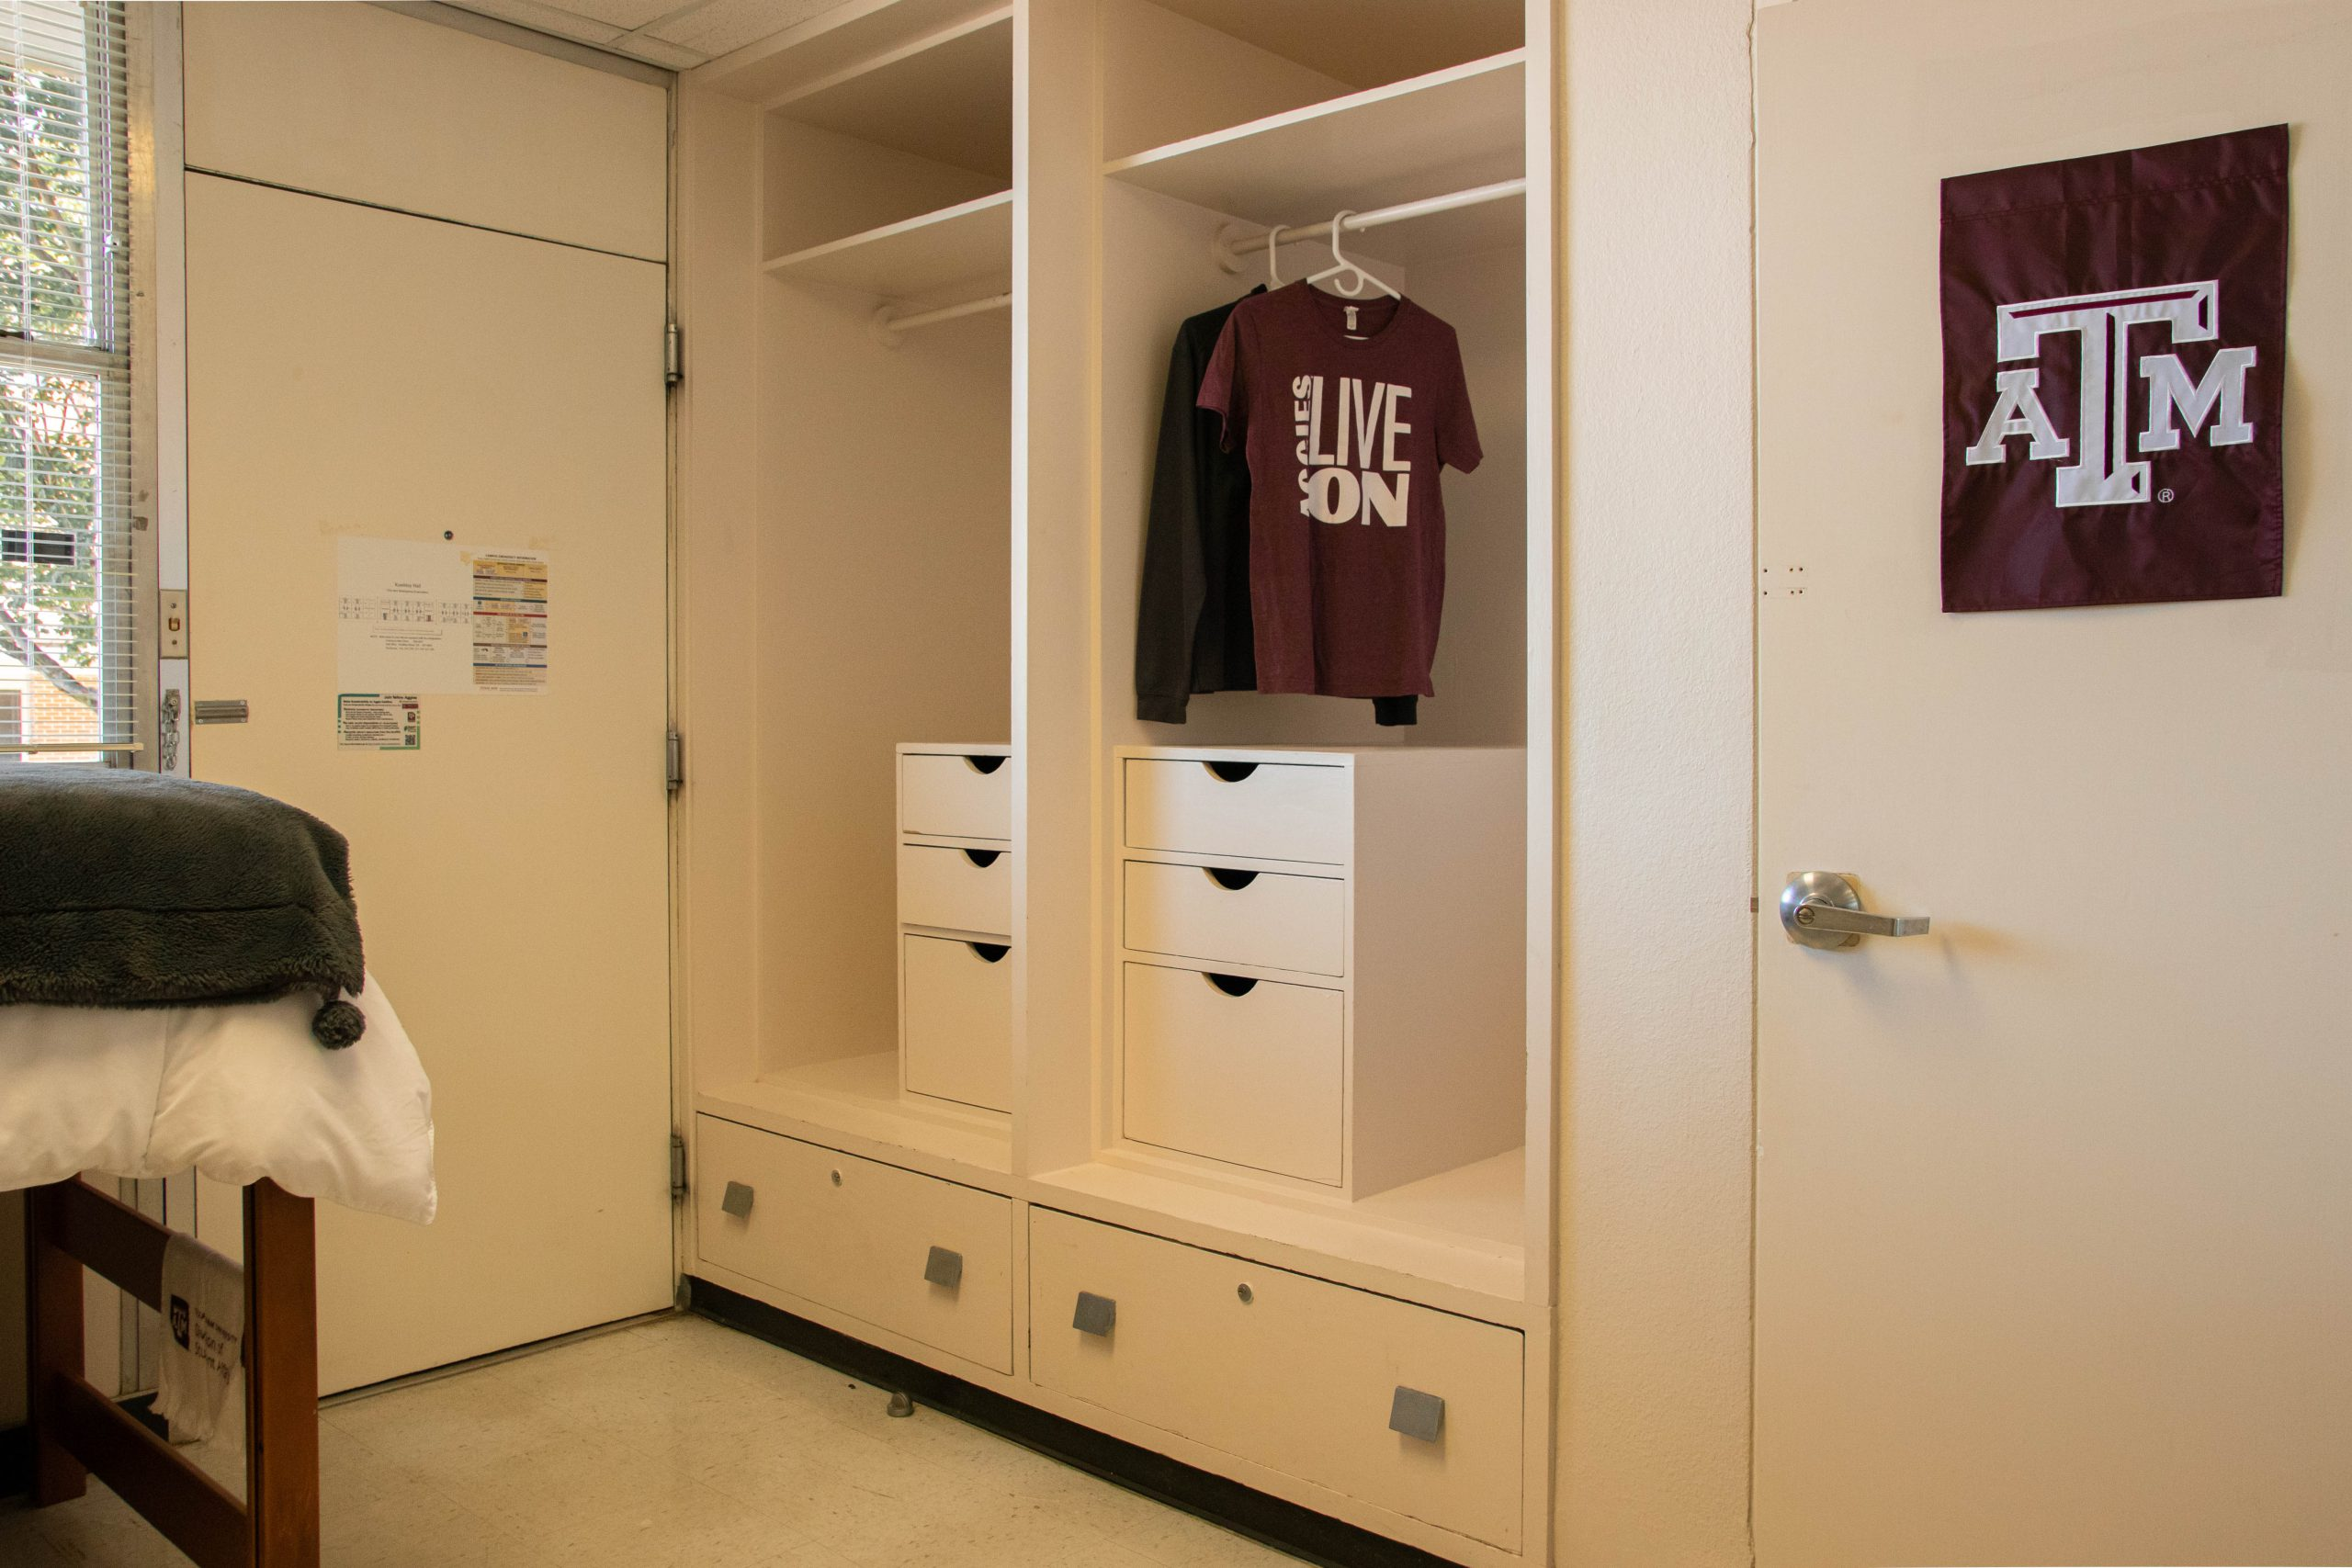 2 closet spaces that contains drawer and cabinet in each closet space, and view of entrance door